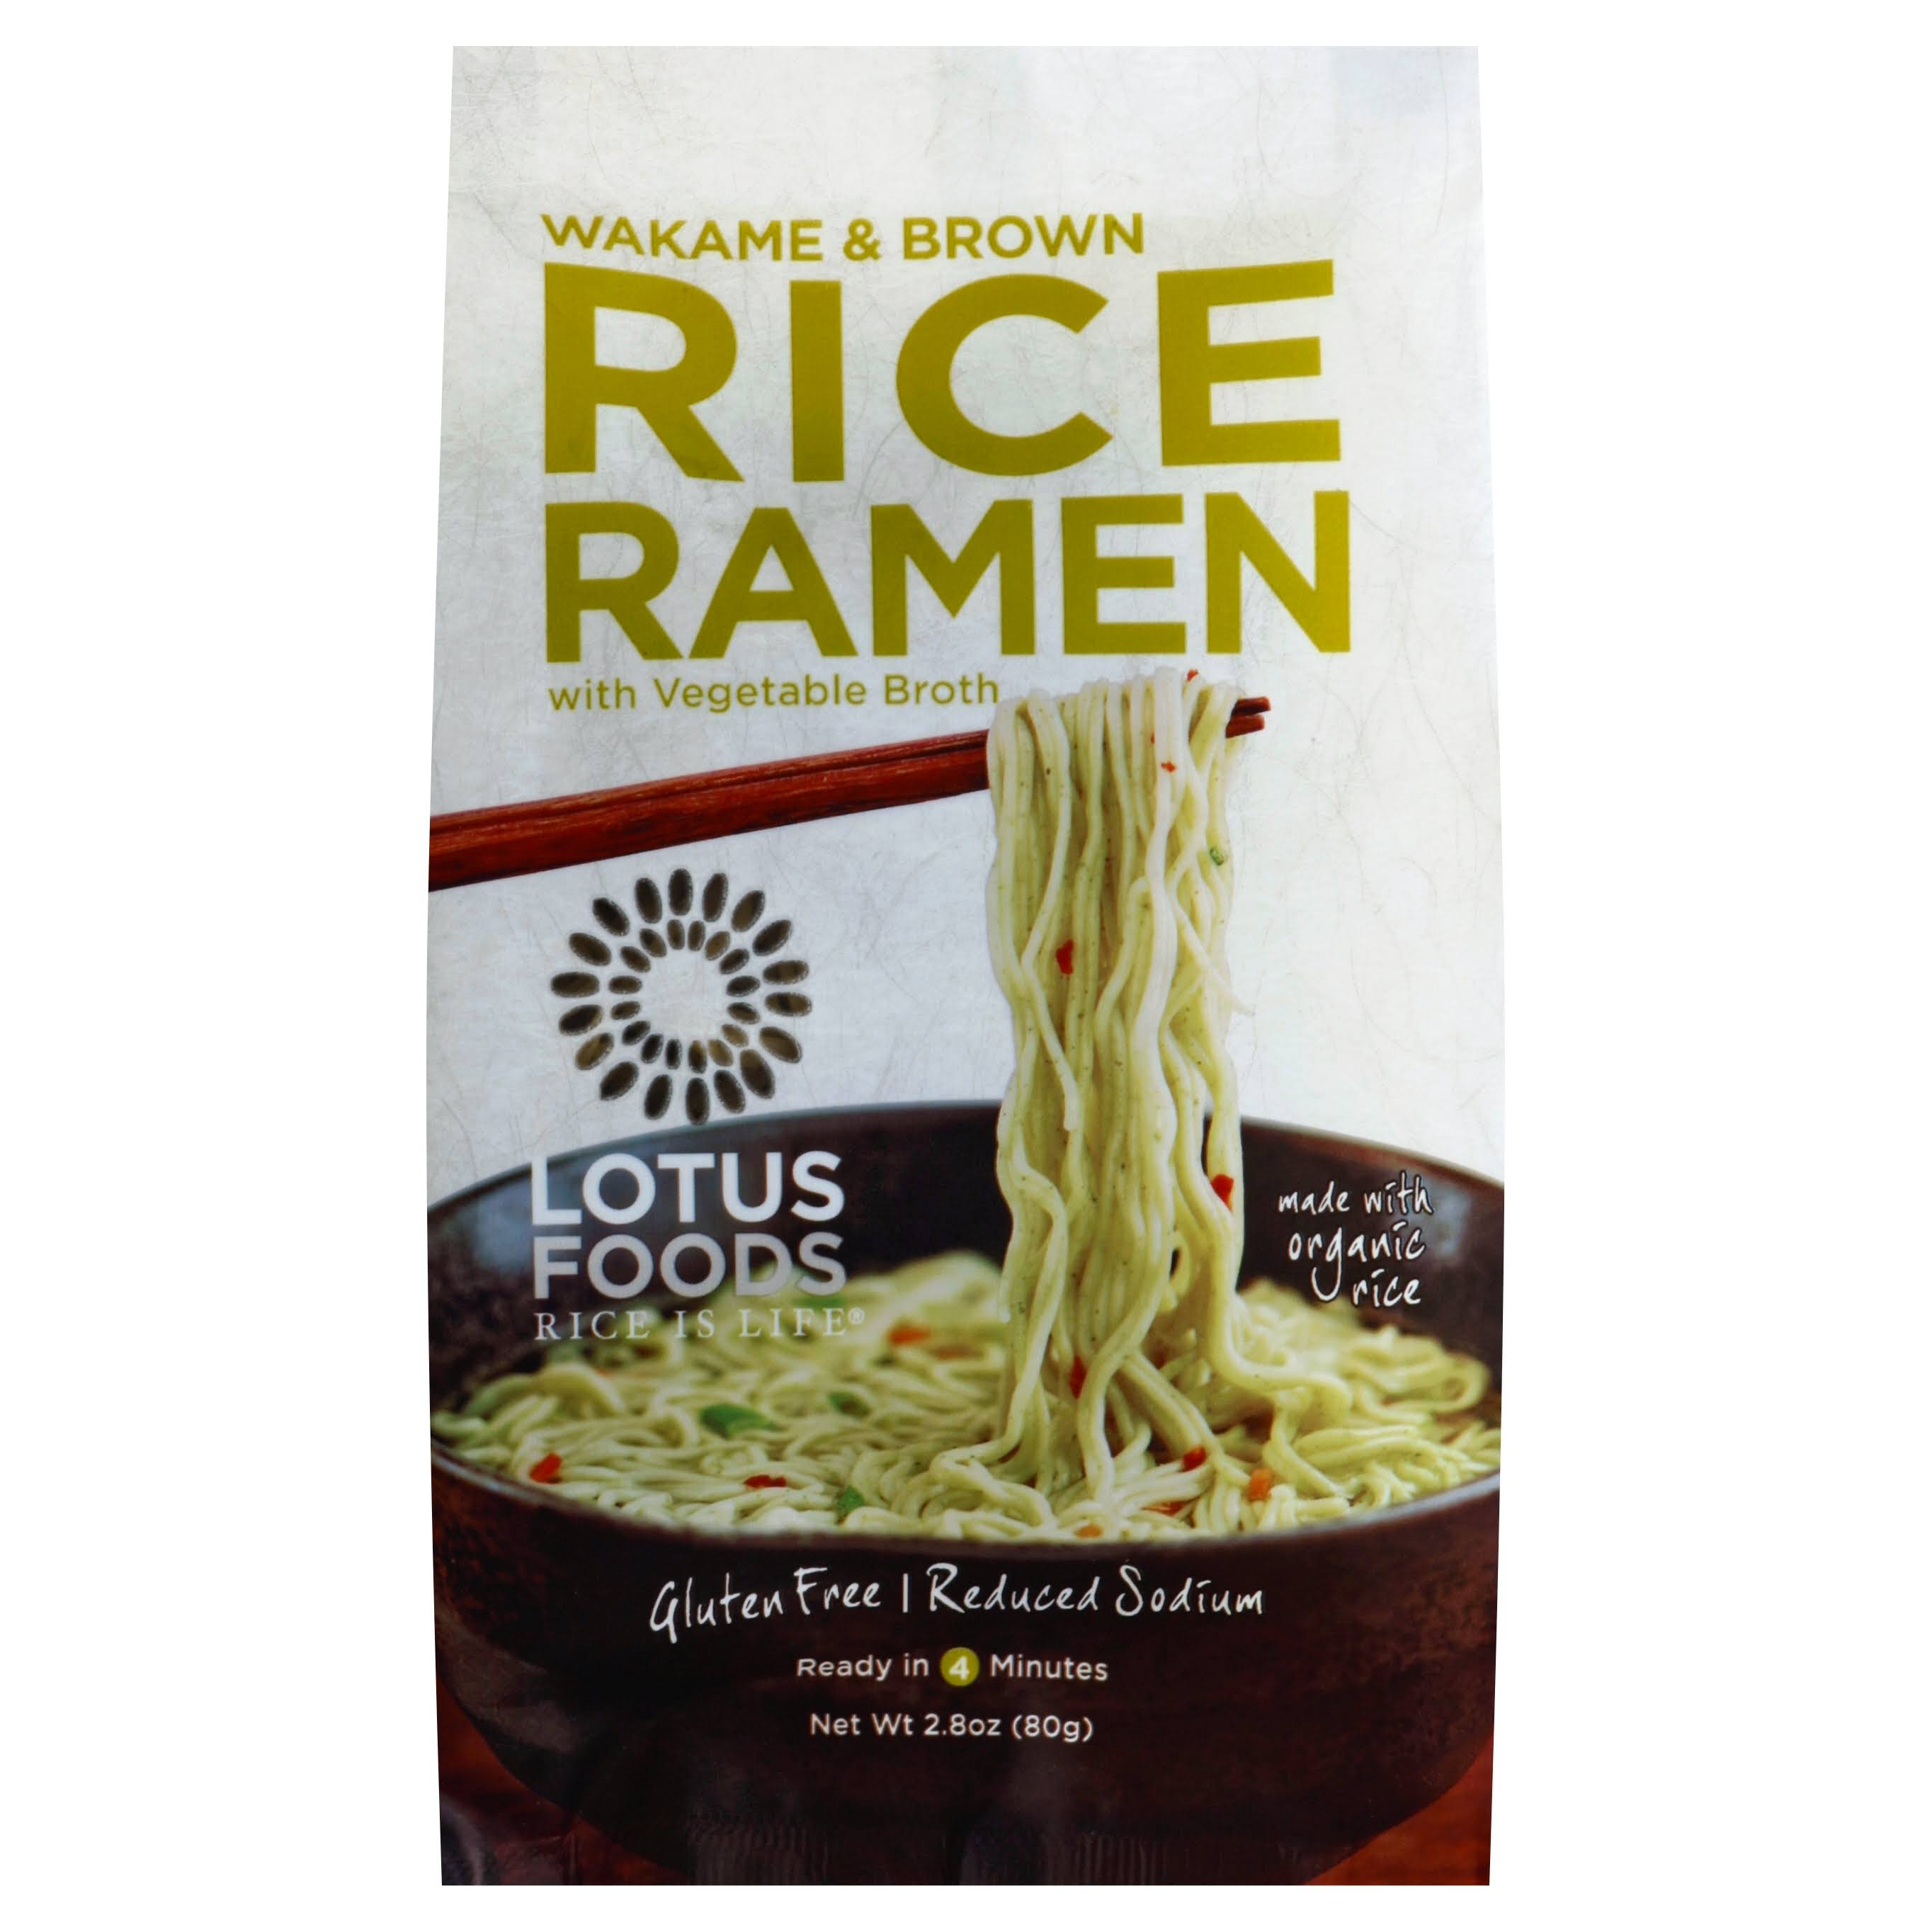 Lotus Foods Wakame and Brown Rice Ramen - with Vegetable Broth, 2.8oz